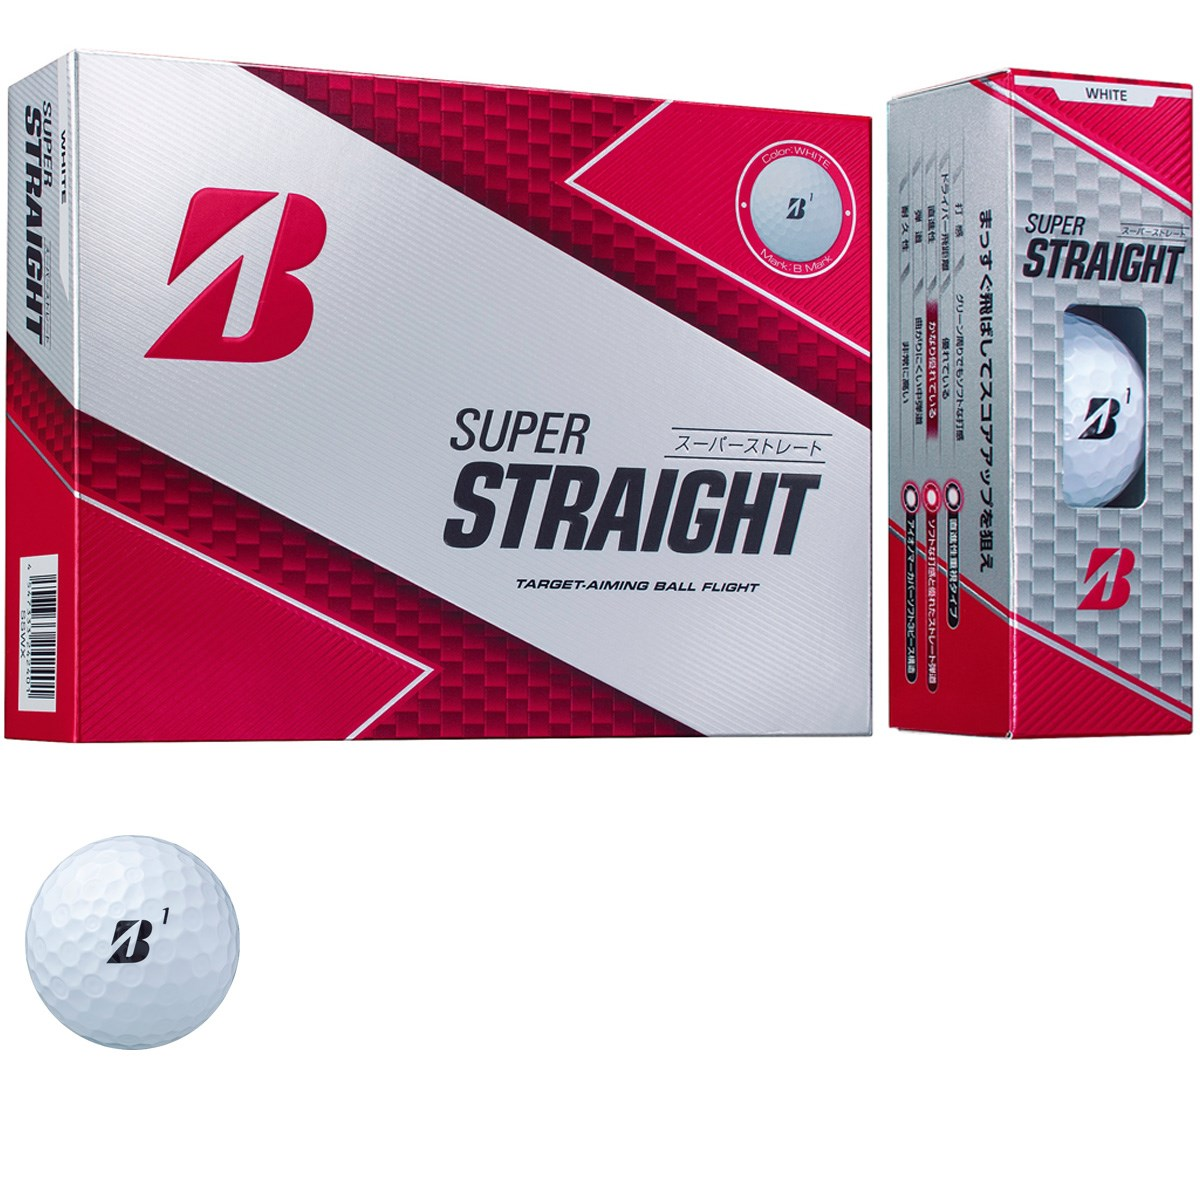 ブリヂストン(BRIDGESTONE GOLF) SUPER STRAIGHT ボール